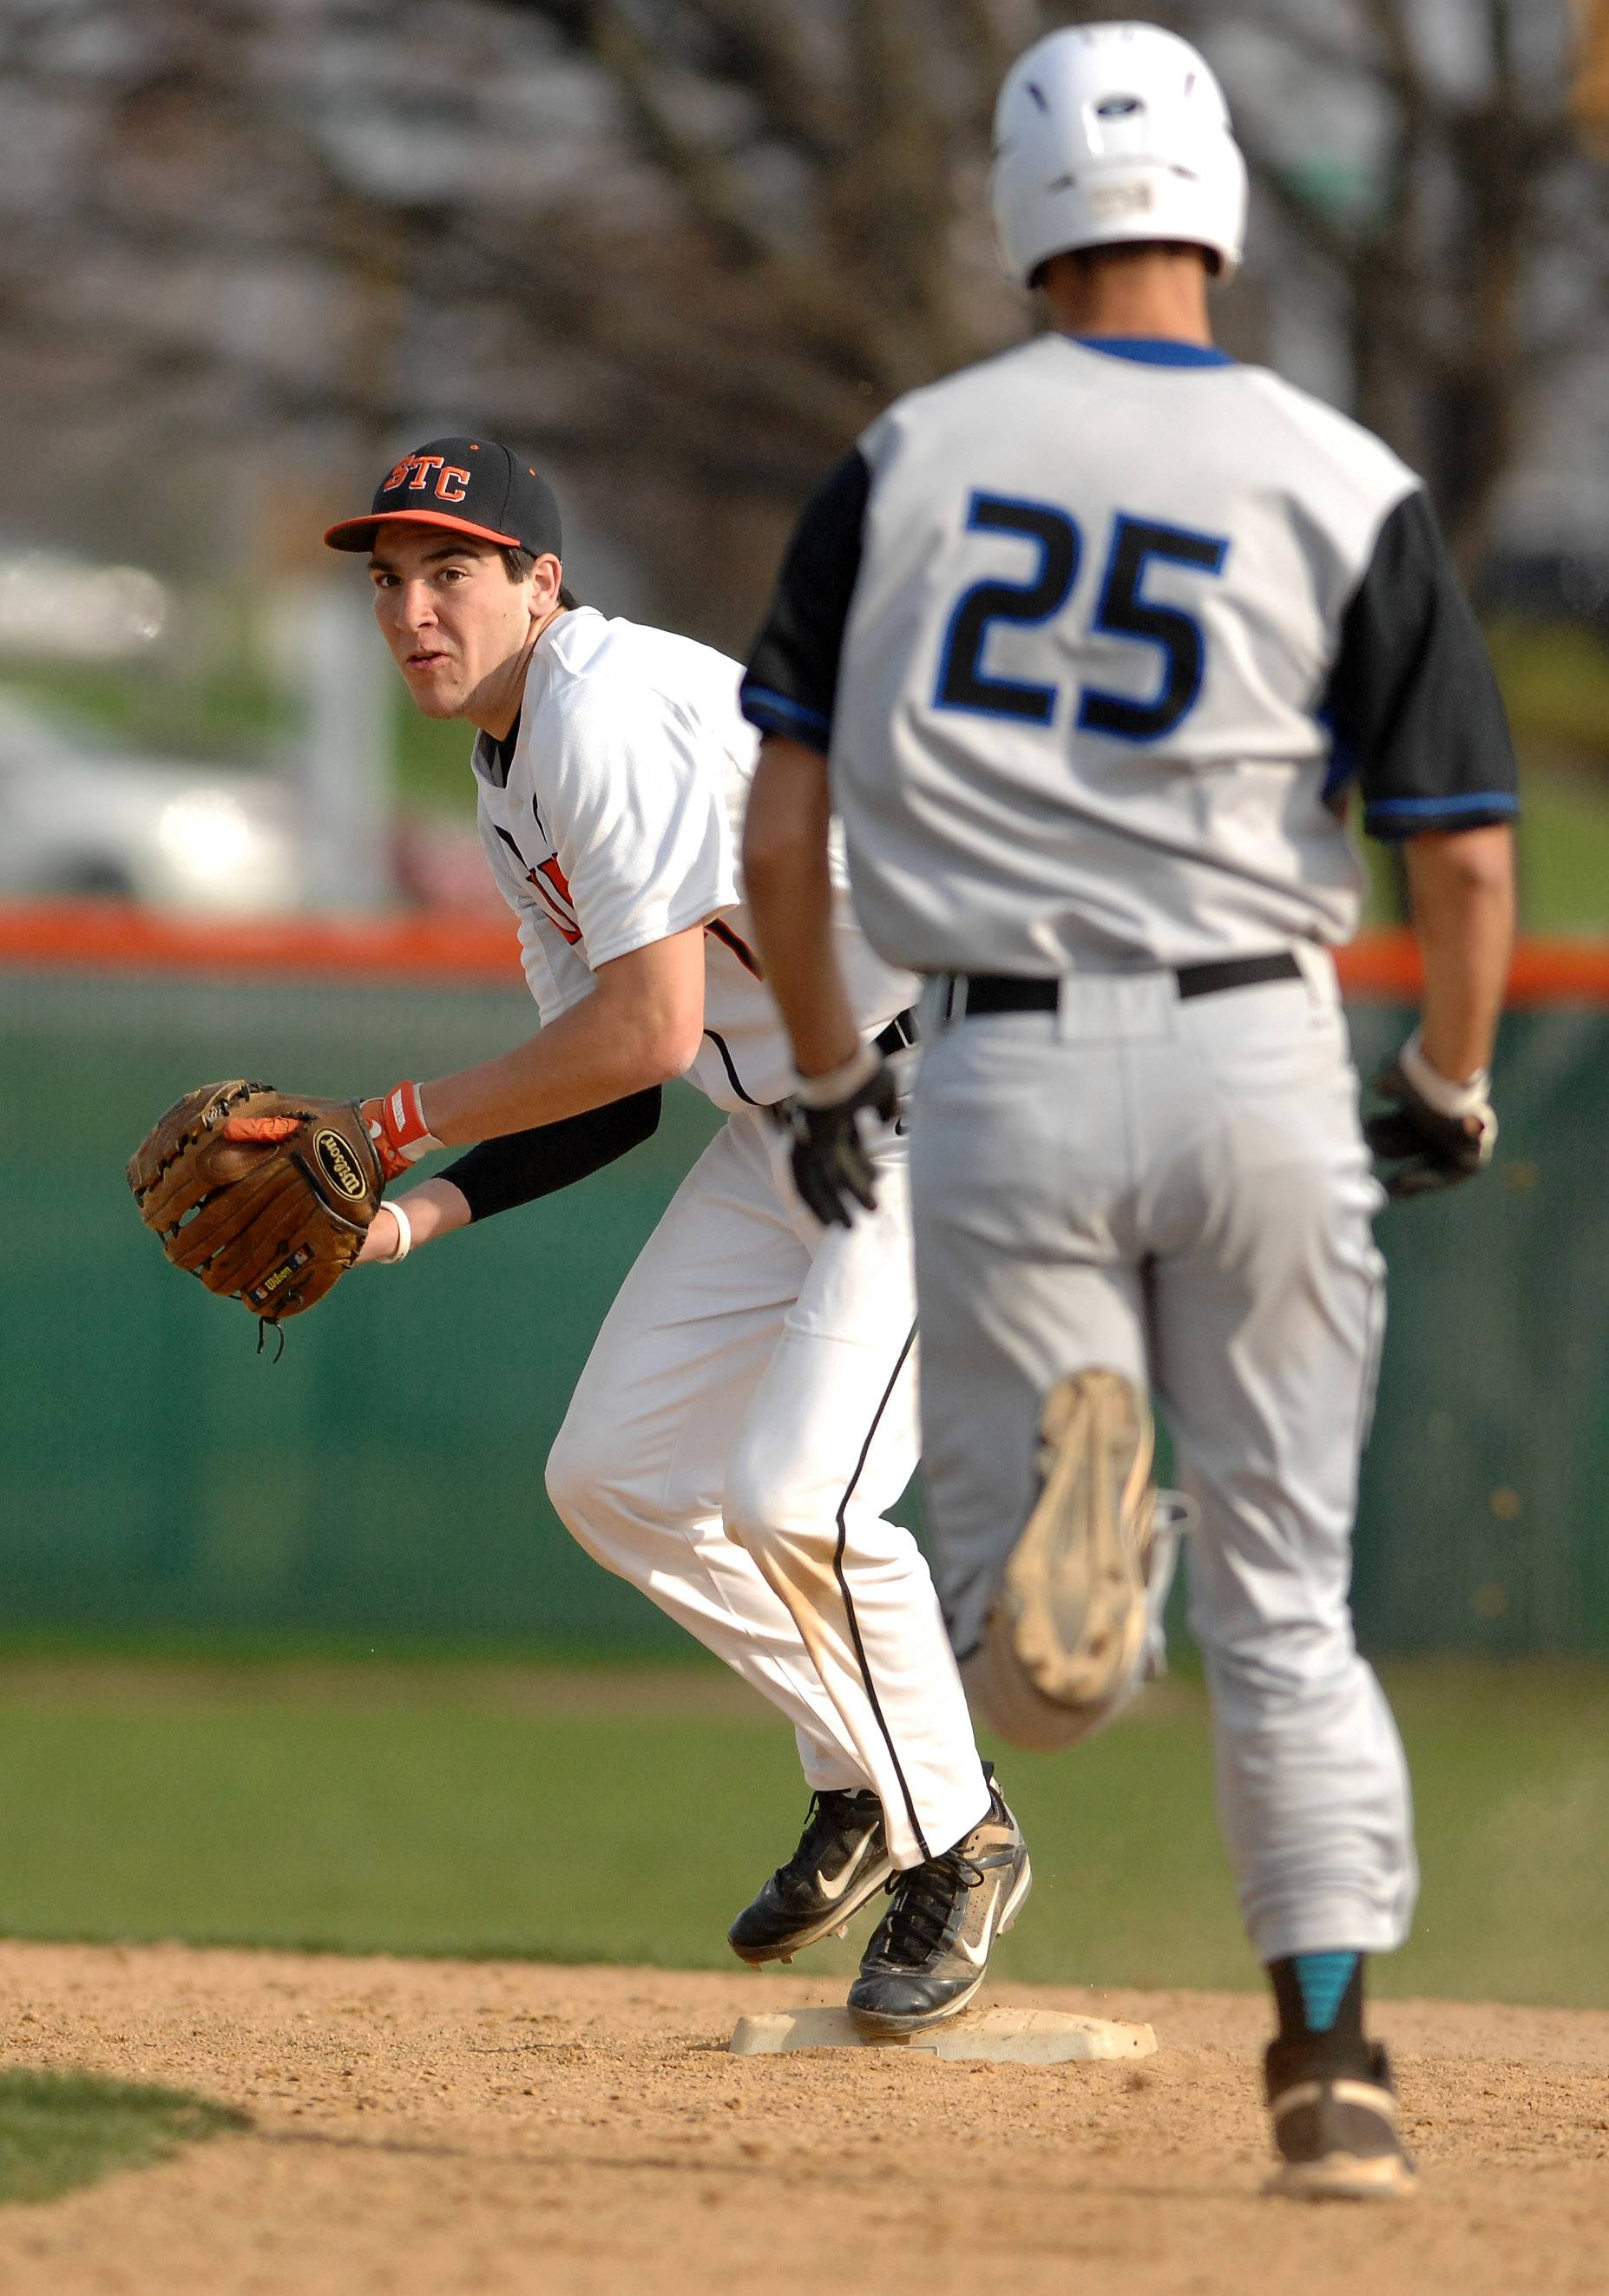 St. Charles East's Jake Asquini (7) takes the throw and looks to turn a double play as St. Charles North's Joe Kuczek (25) bears down during Tuesday's game at St. Charles East.